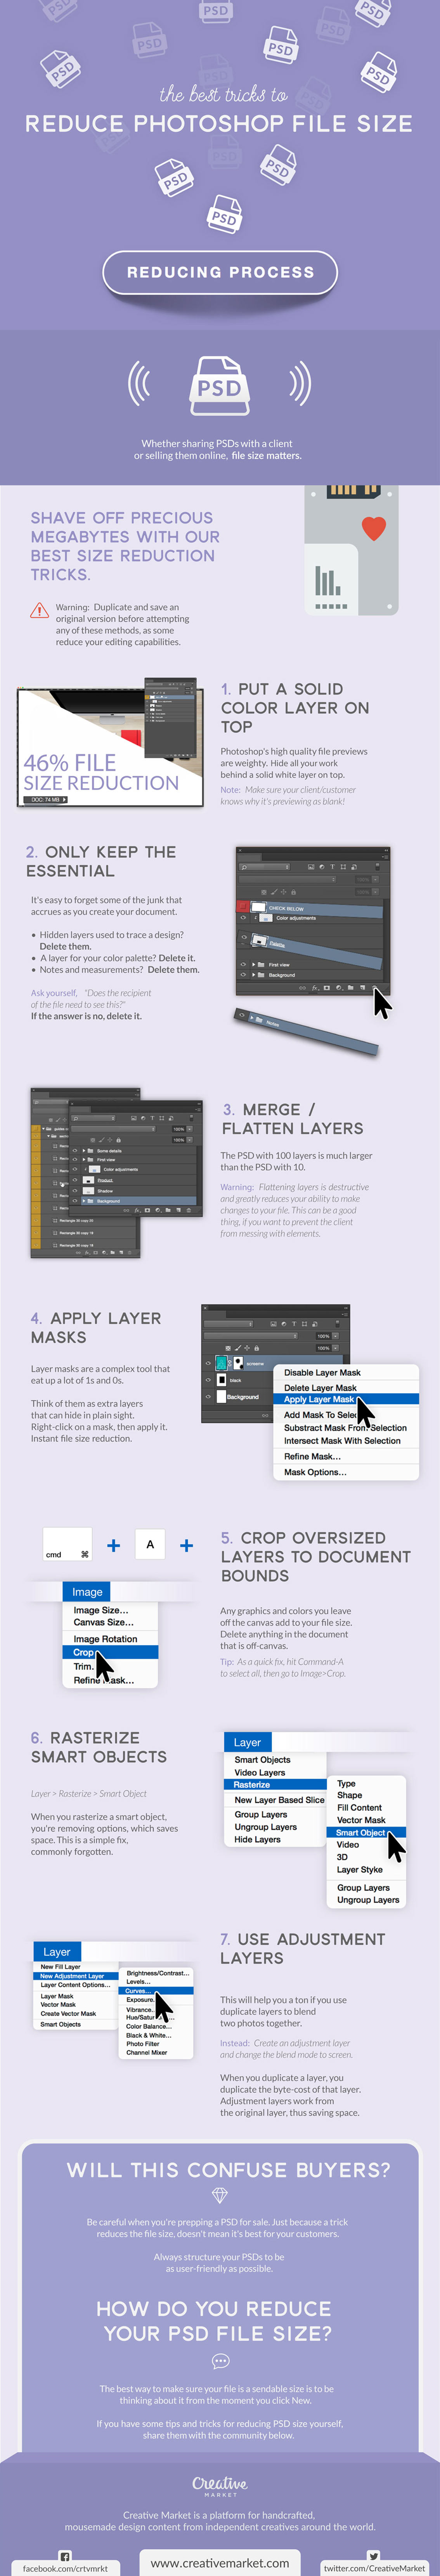 How to Reduce PSD File Size - Photoshop Infographic